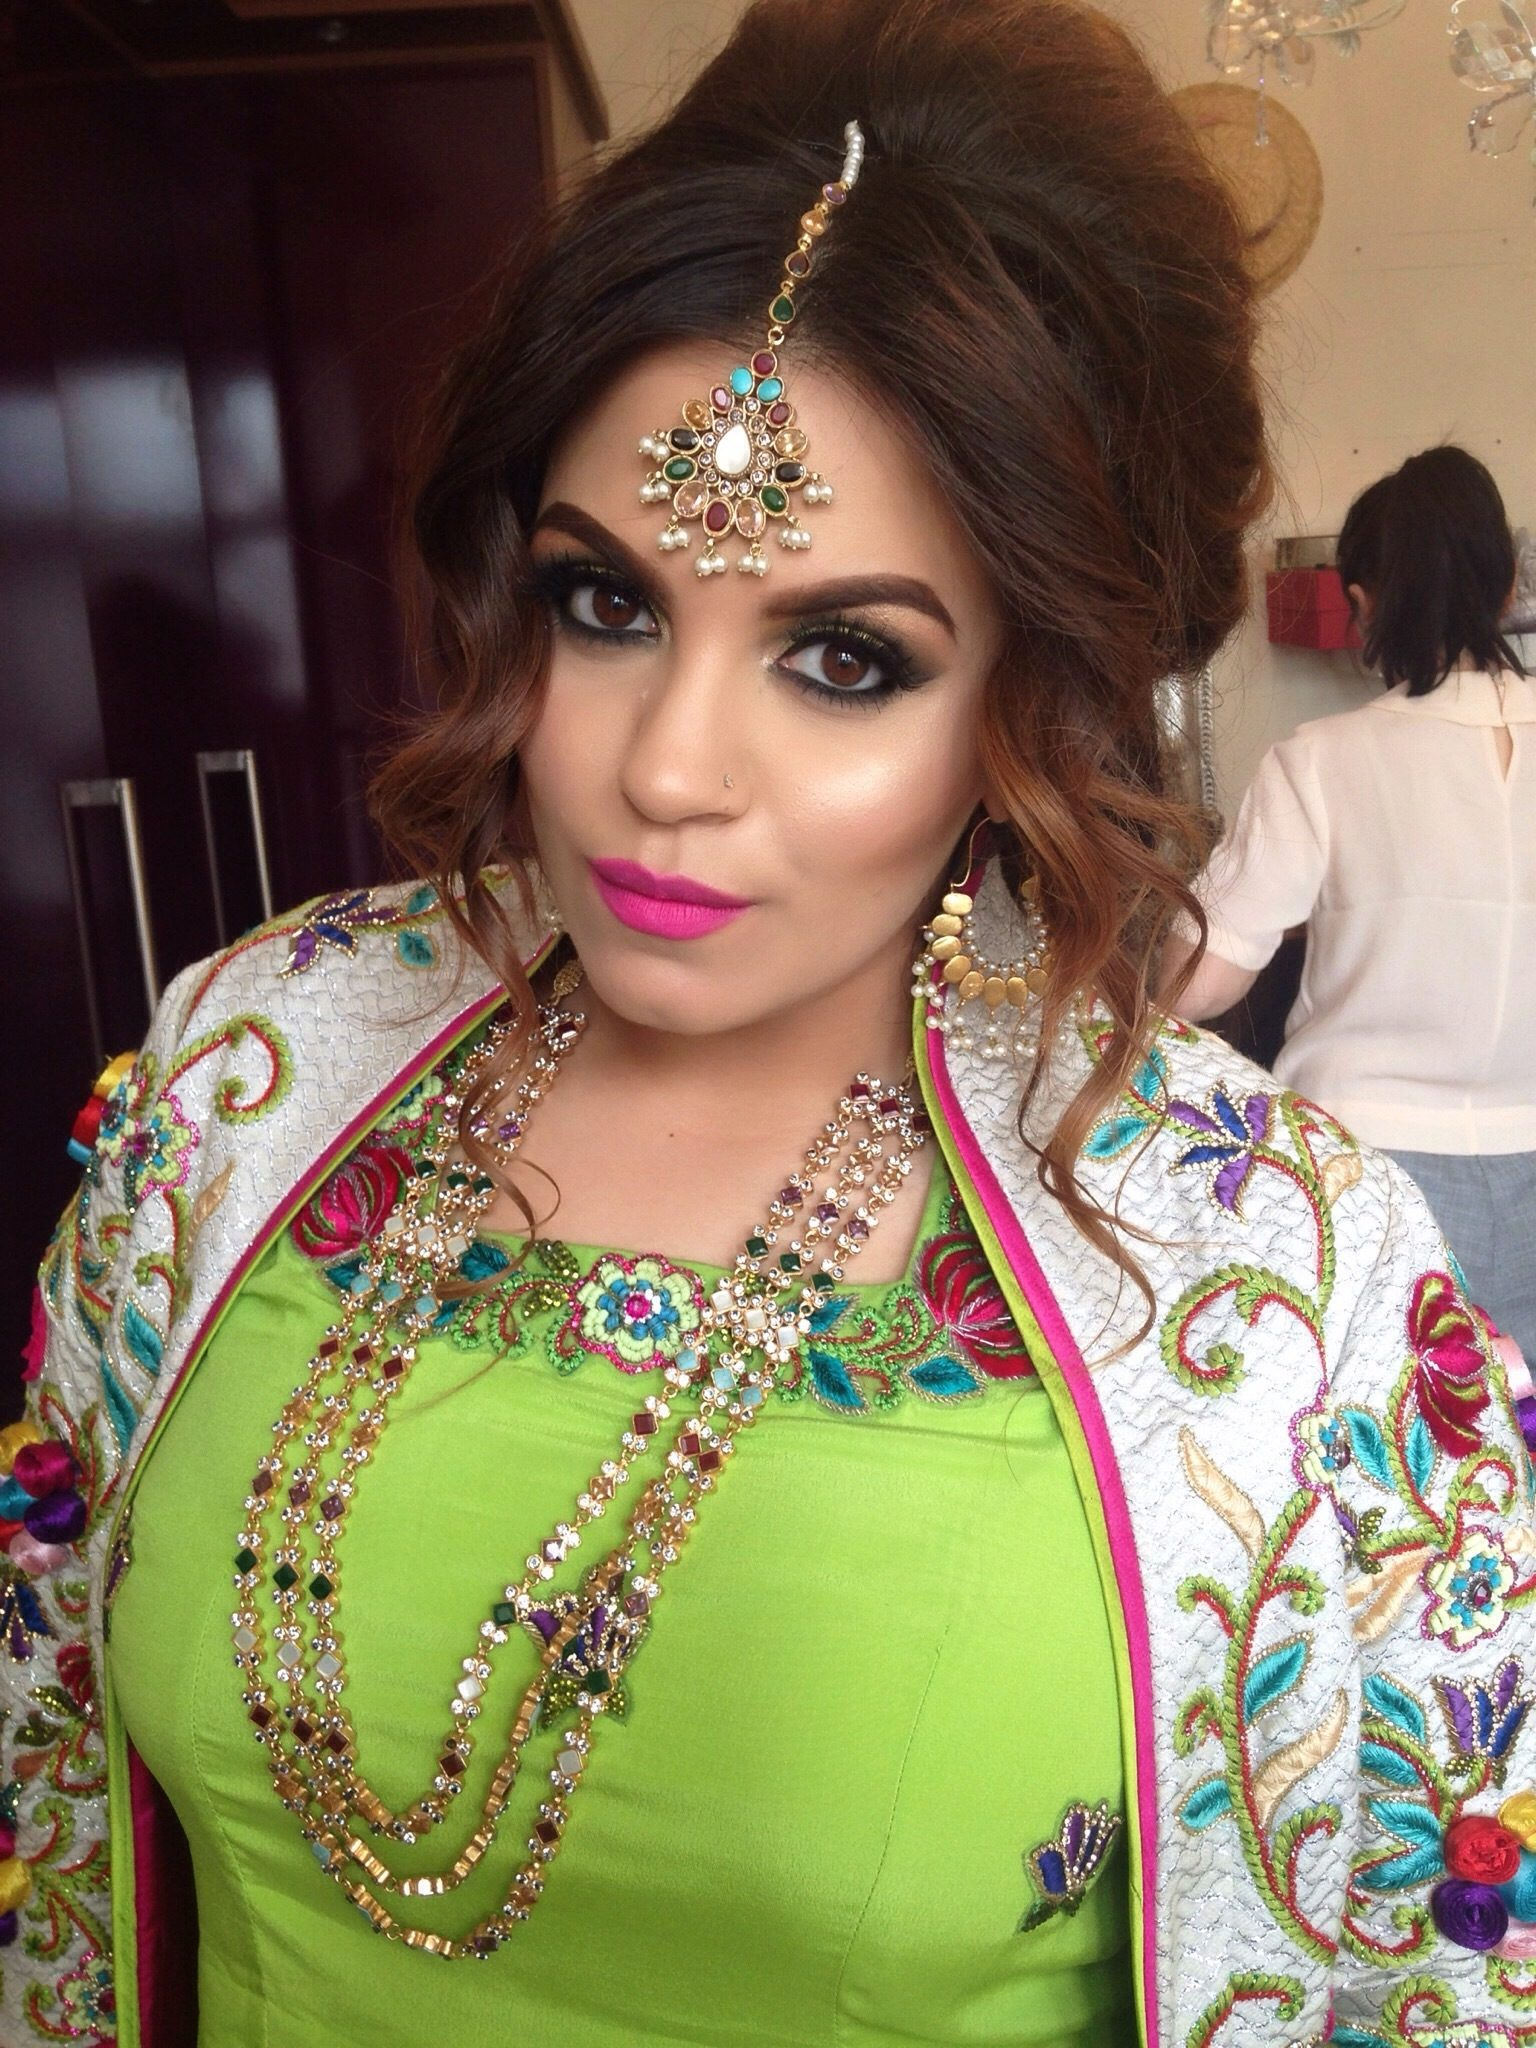 Joy Adenuga Makeup Artist 187 Indian Wedding Joy Adenuga